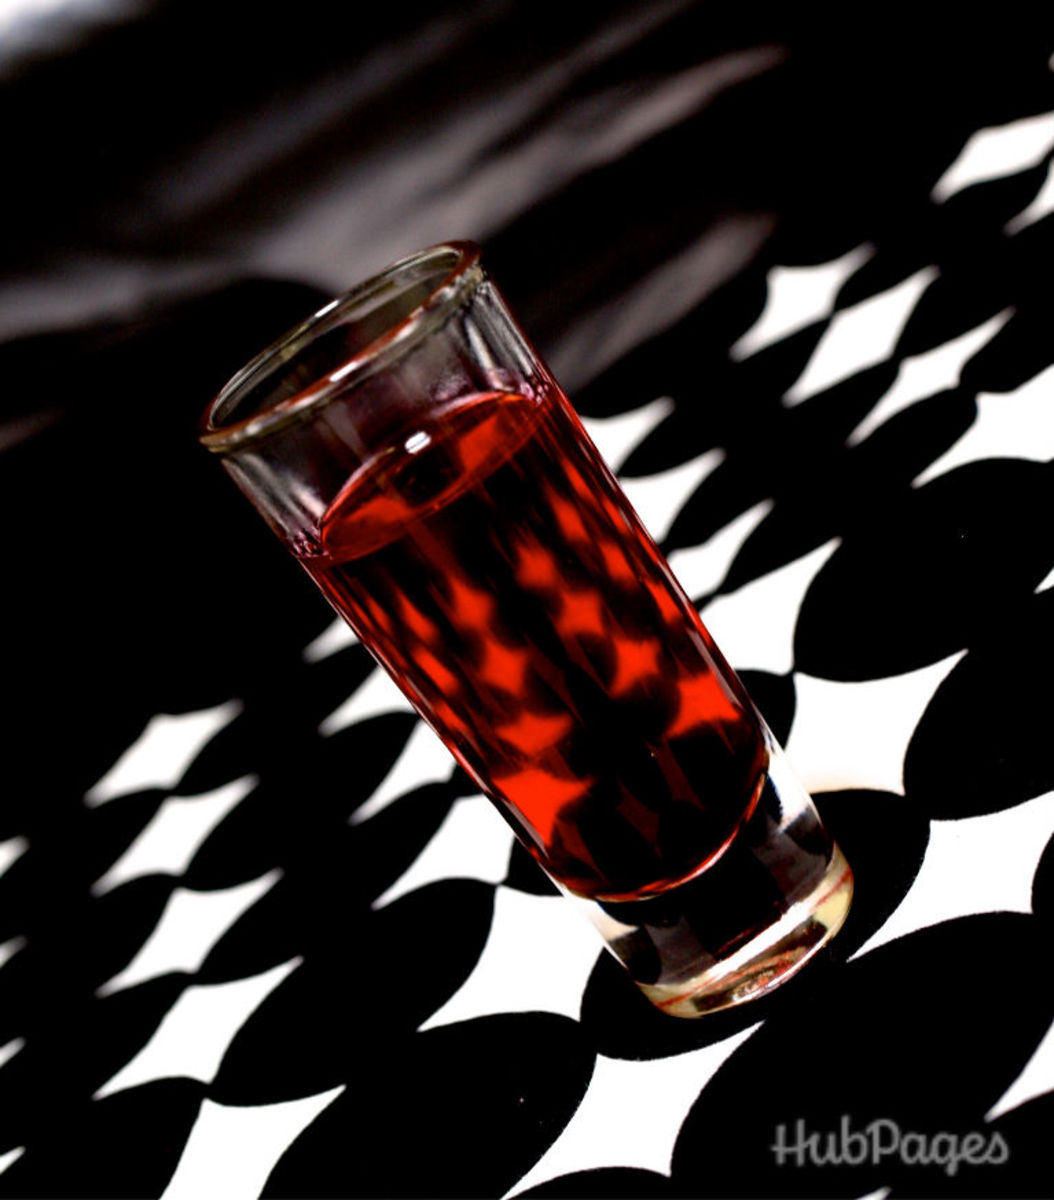 Or try this spooky Halloween tequila shot, the Blood Bath.